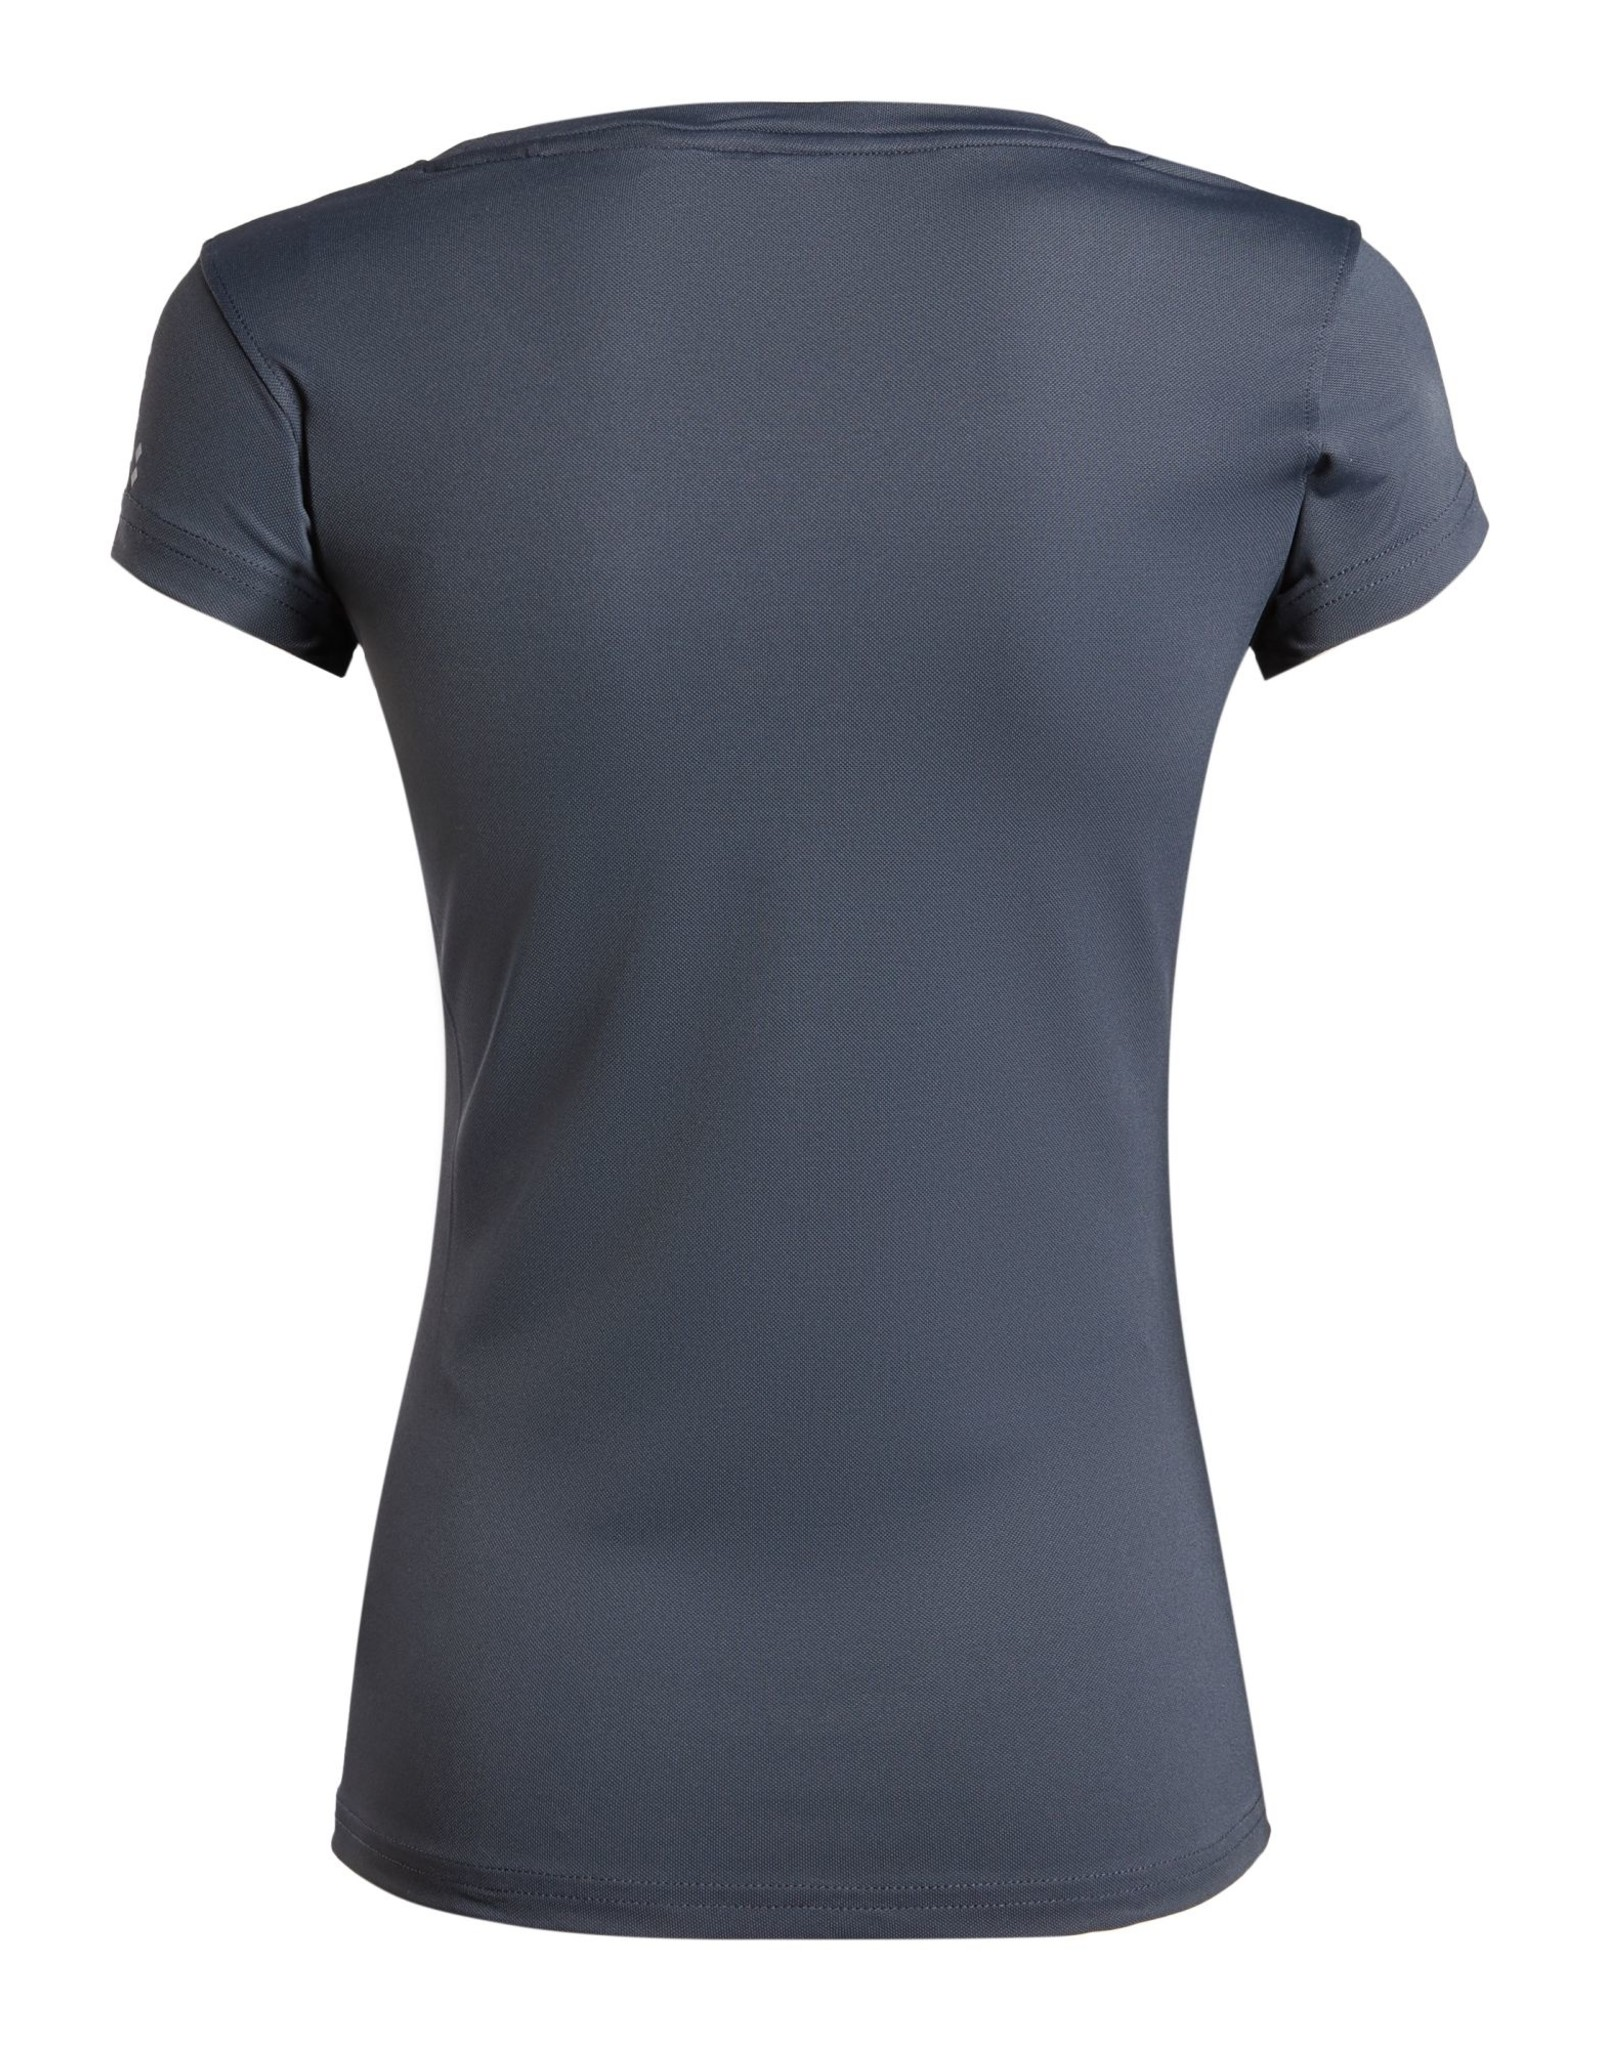 Slam Tech Alliot t-shirt - Navy (150)